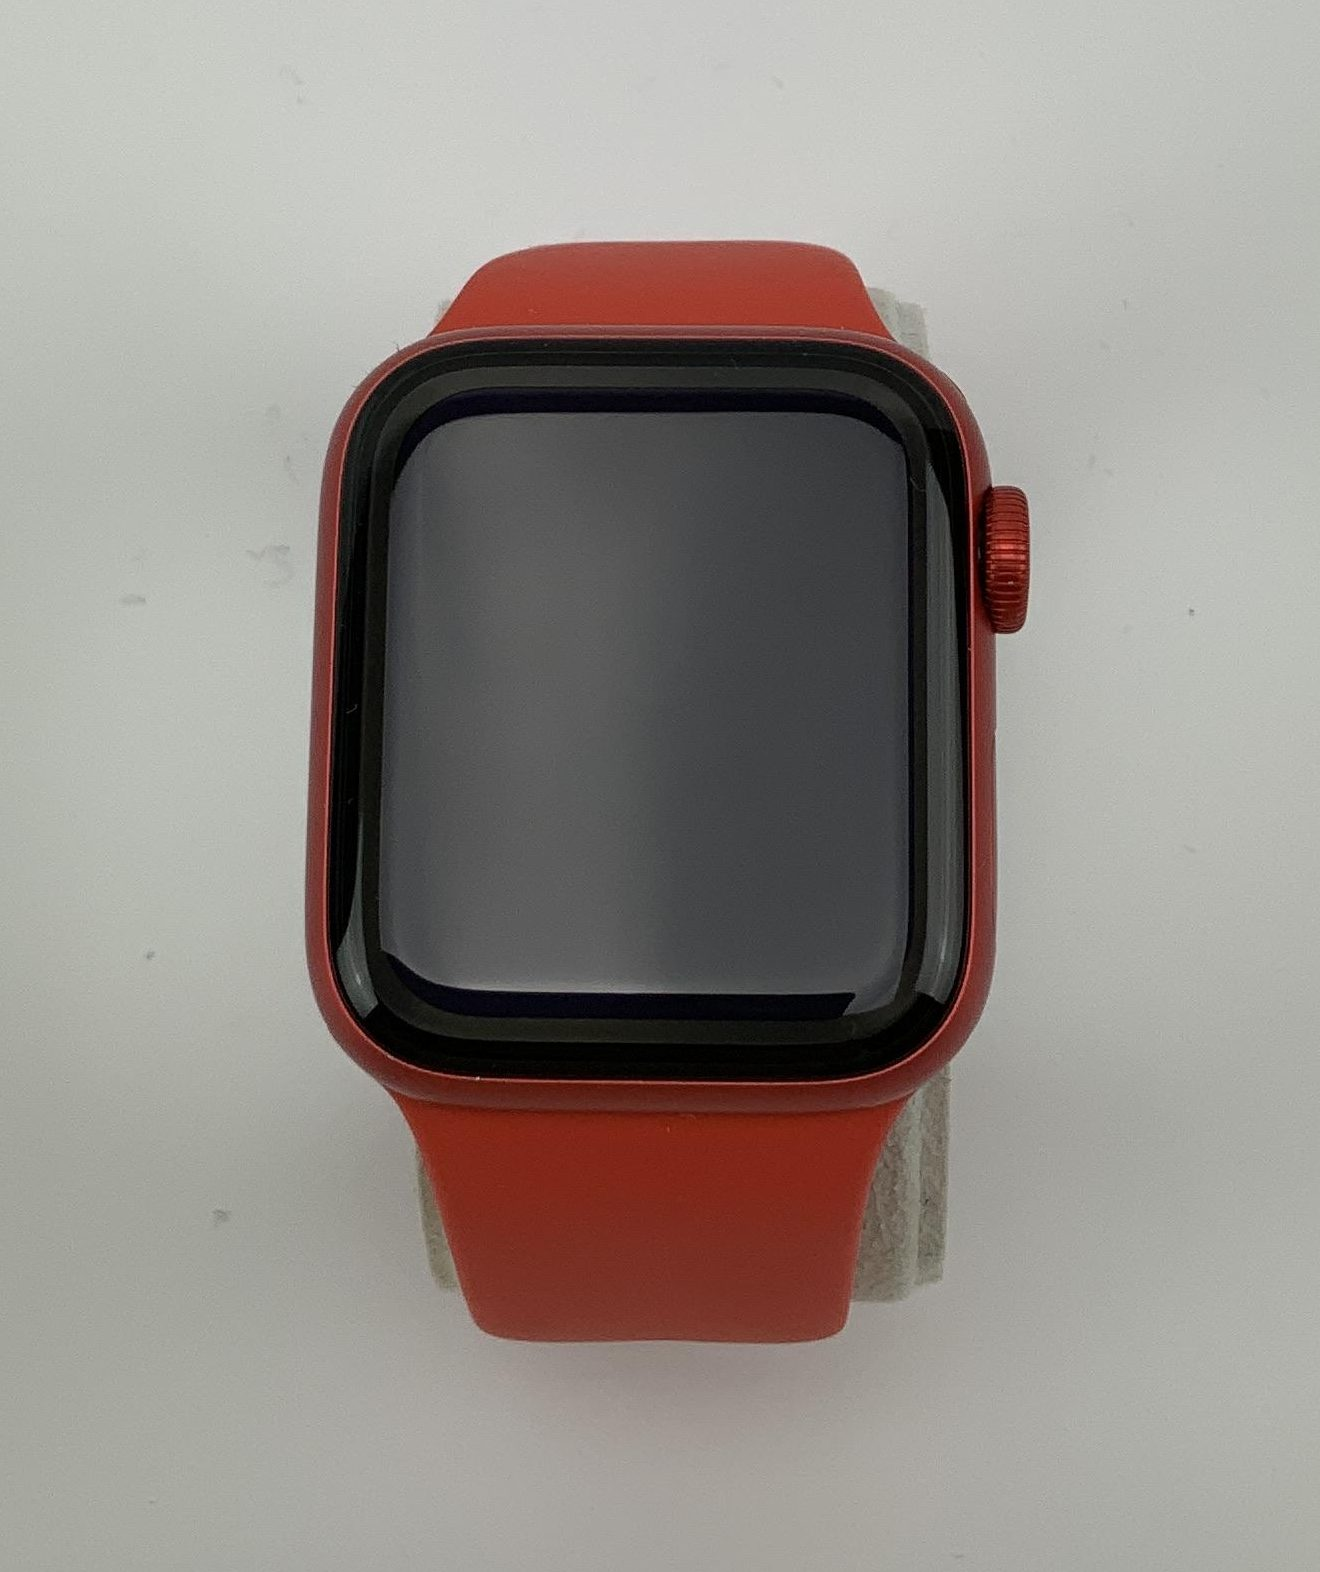 Watch Series 6 Aluminum Cellular (40mm), Red, image 1